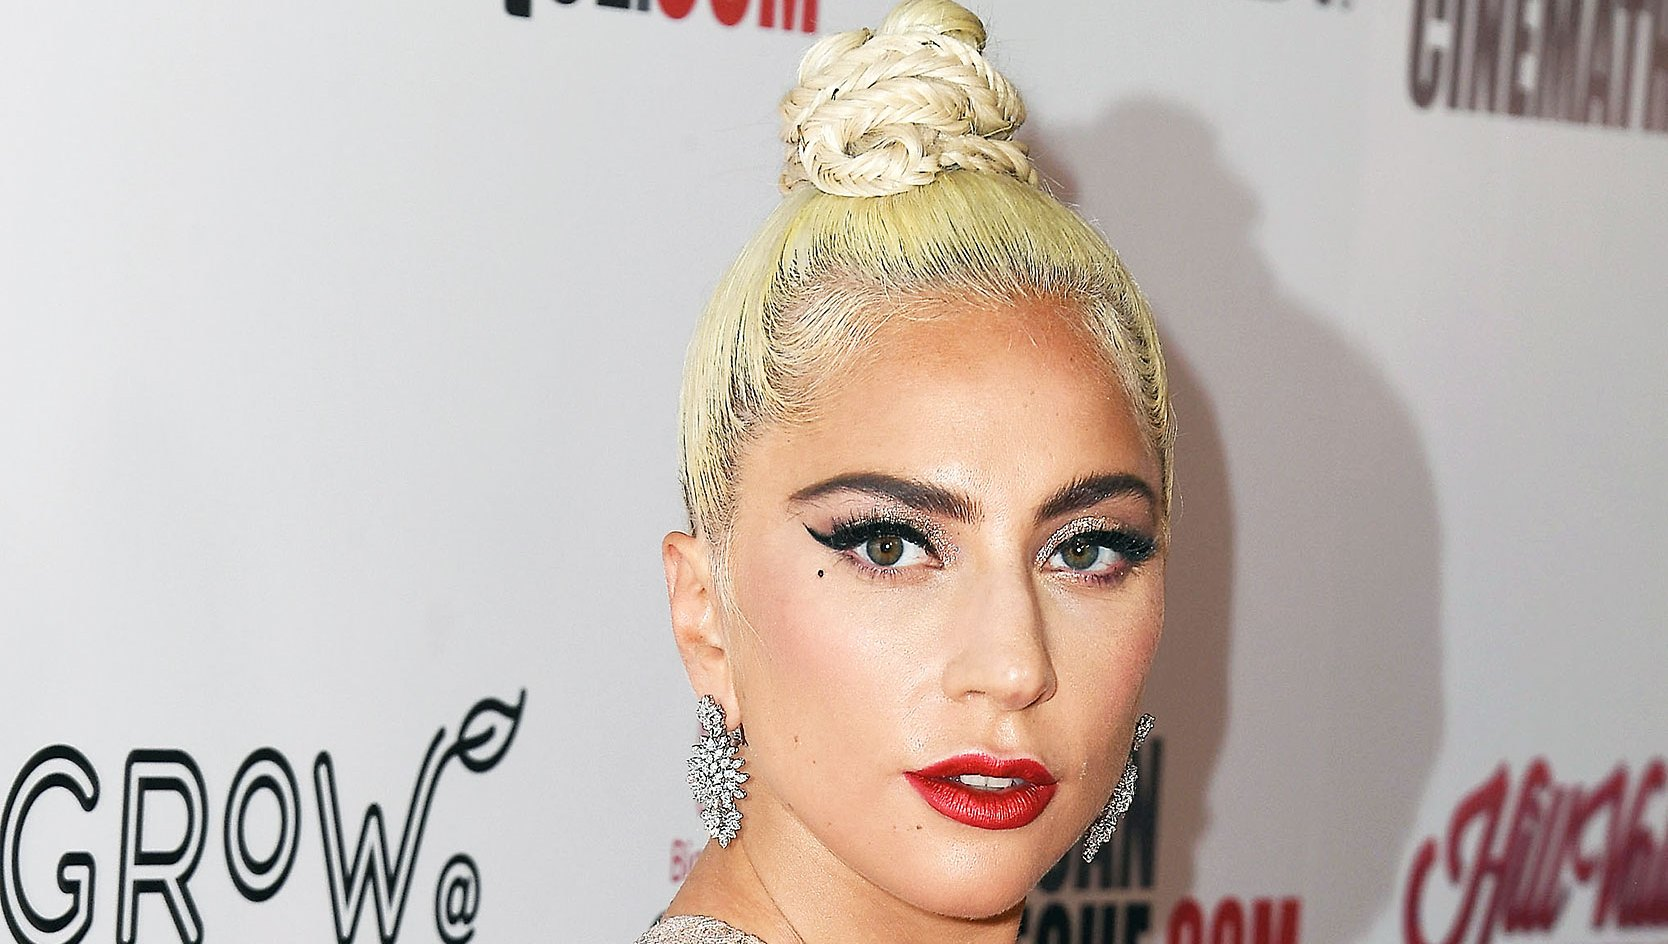 Lady Gaga Blonde Before Blue Hair Golden Globes 2019